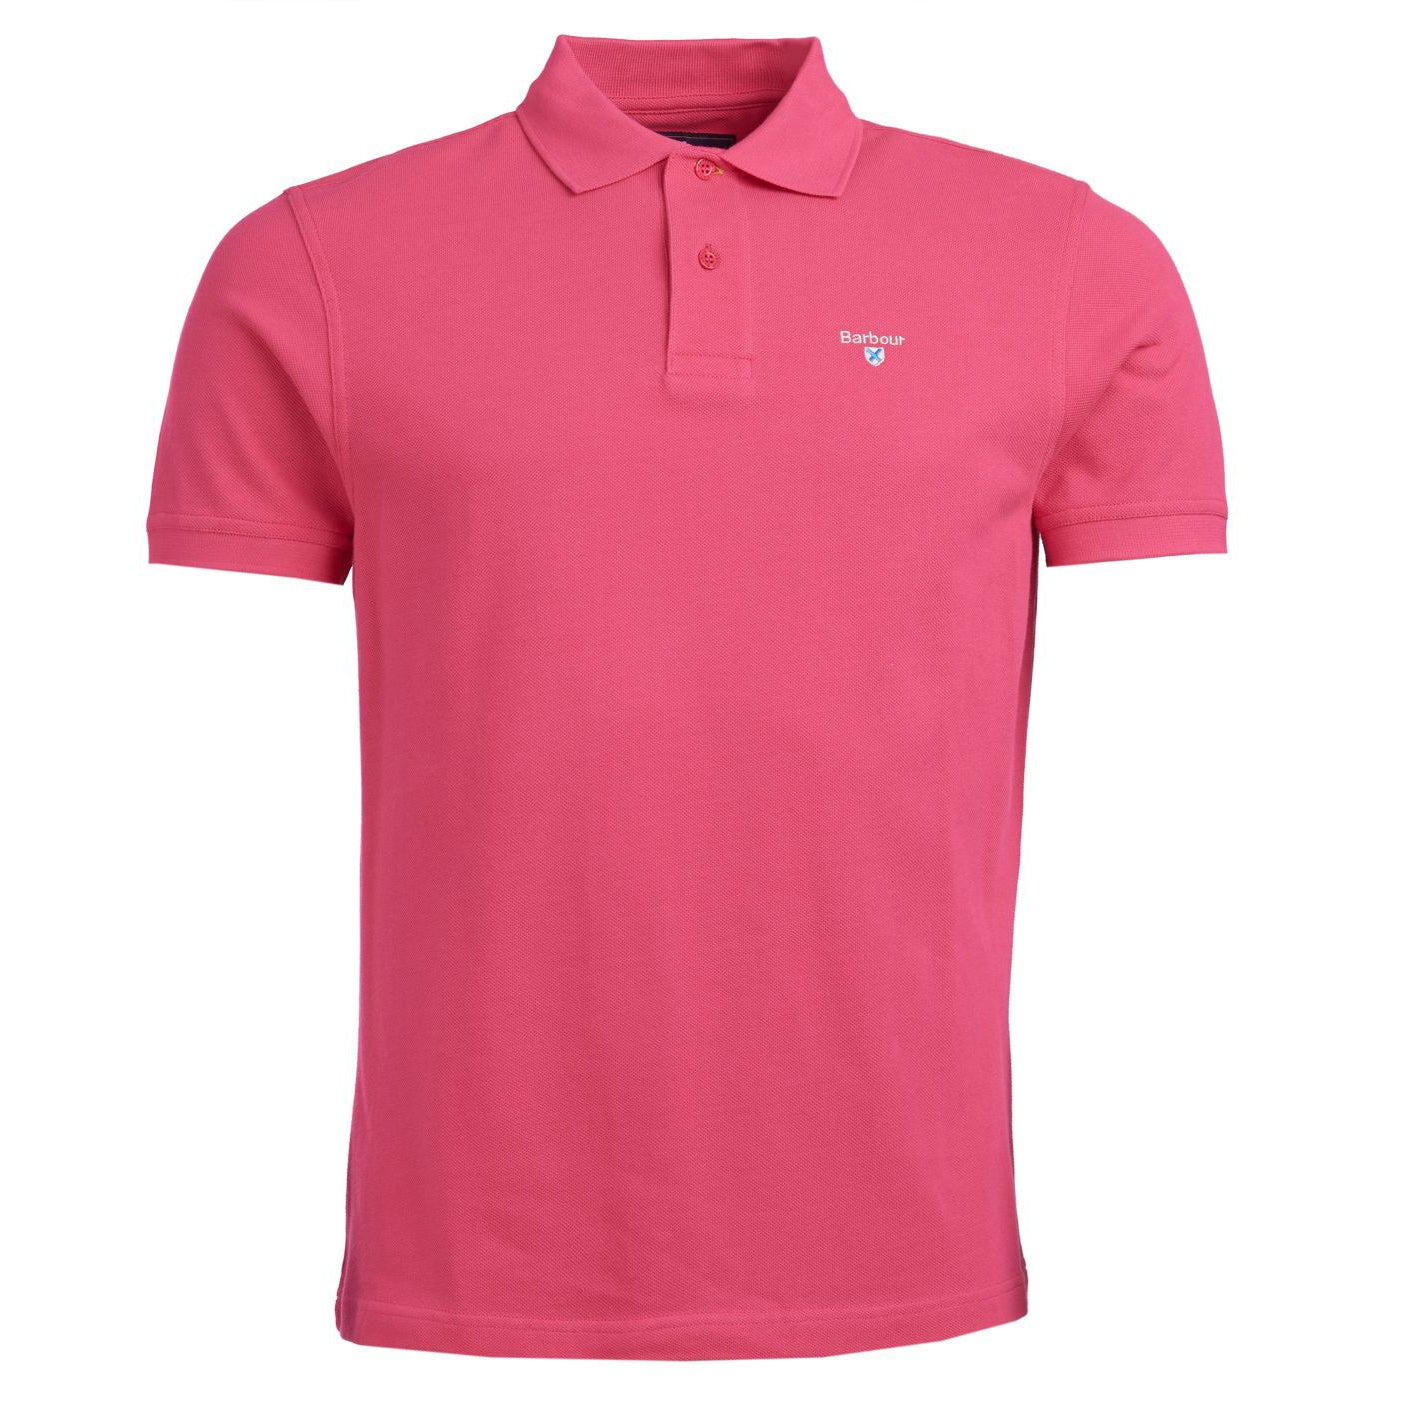 Barbour Sports Short Sleeve Polo Shirt Sorbet